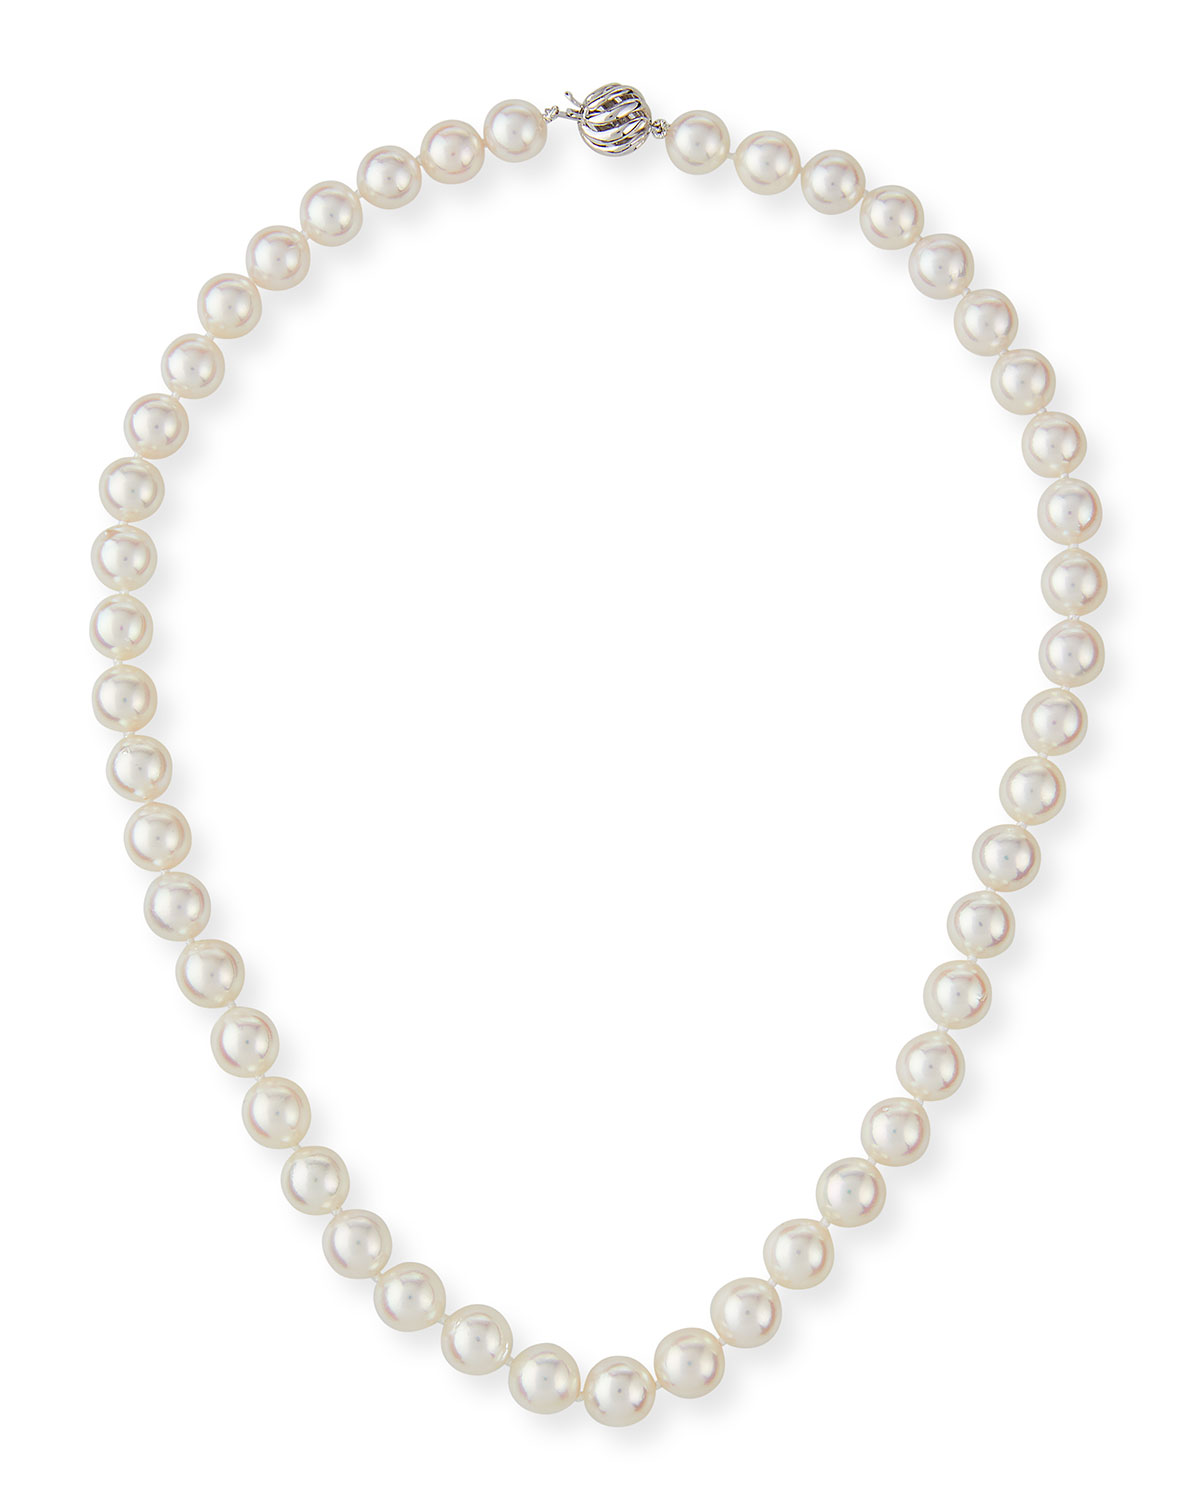 18k White Gold Classic Akoya Cultured Pearl Necklace